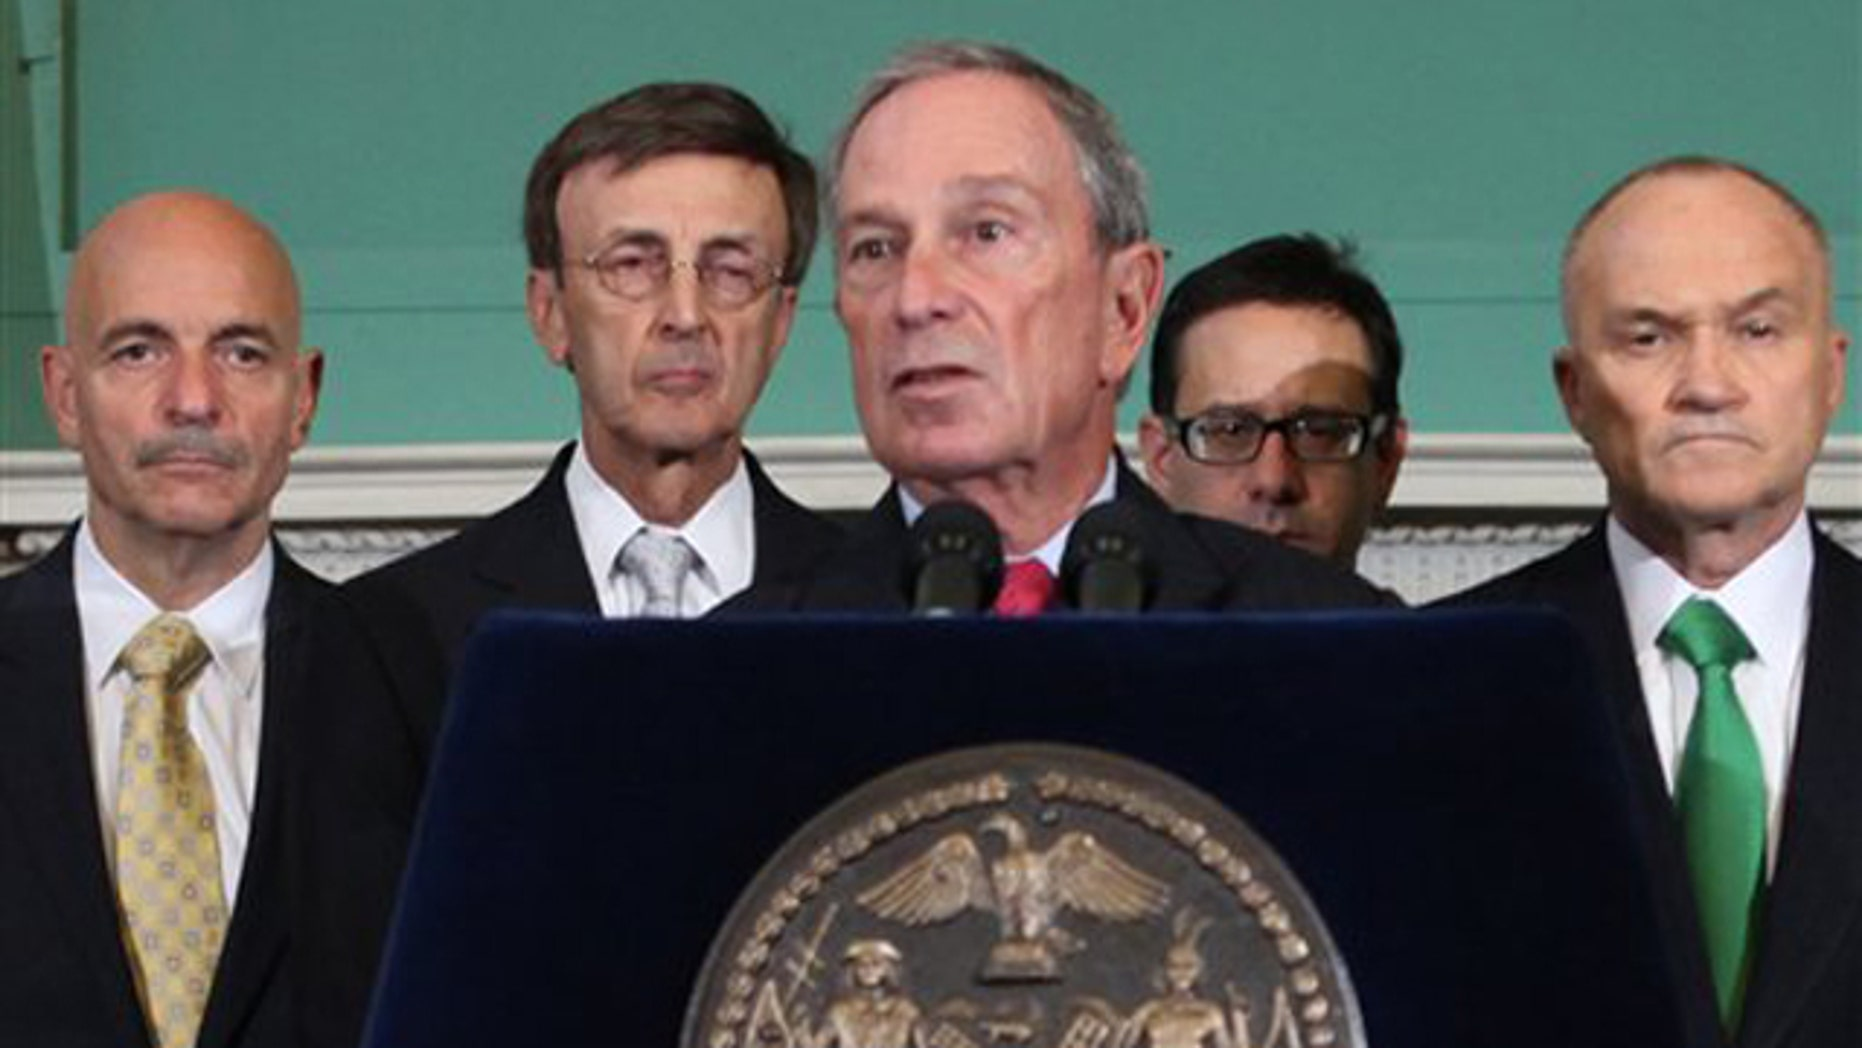 New York City Mayor Michael Bloomberg, center, addresses the media Aug. 25 in New York.